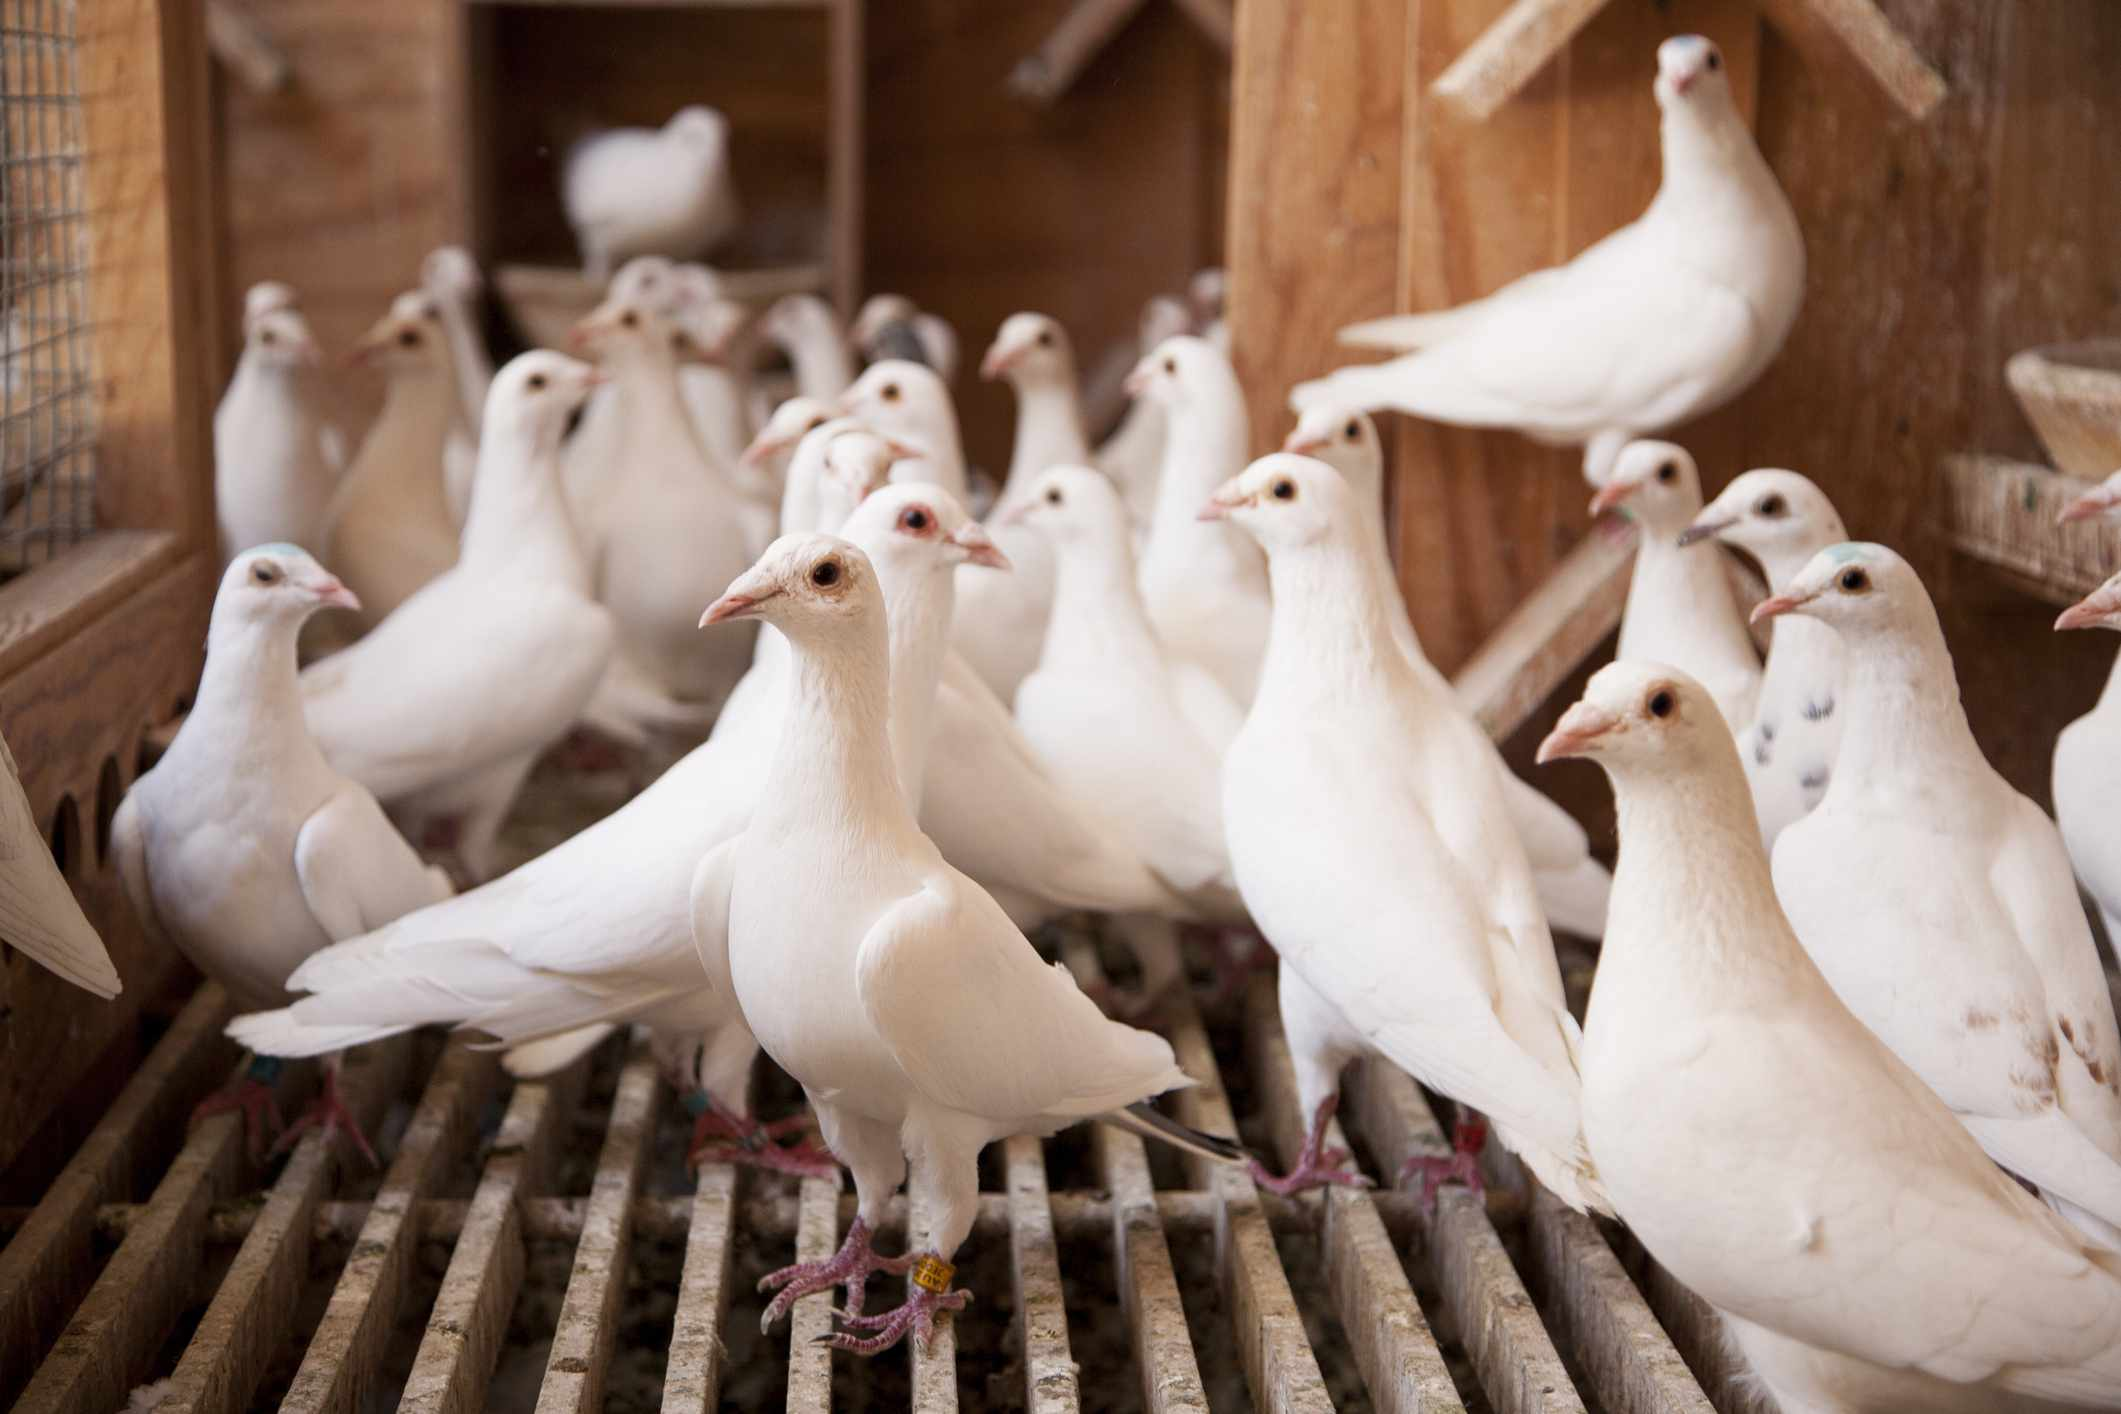 Group of carrier pigeons in a cage